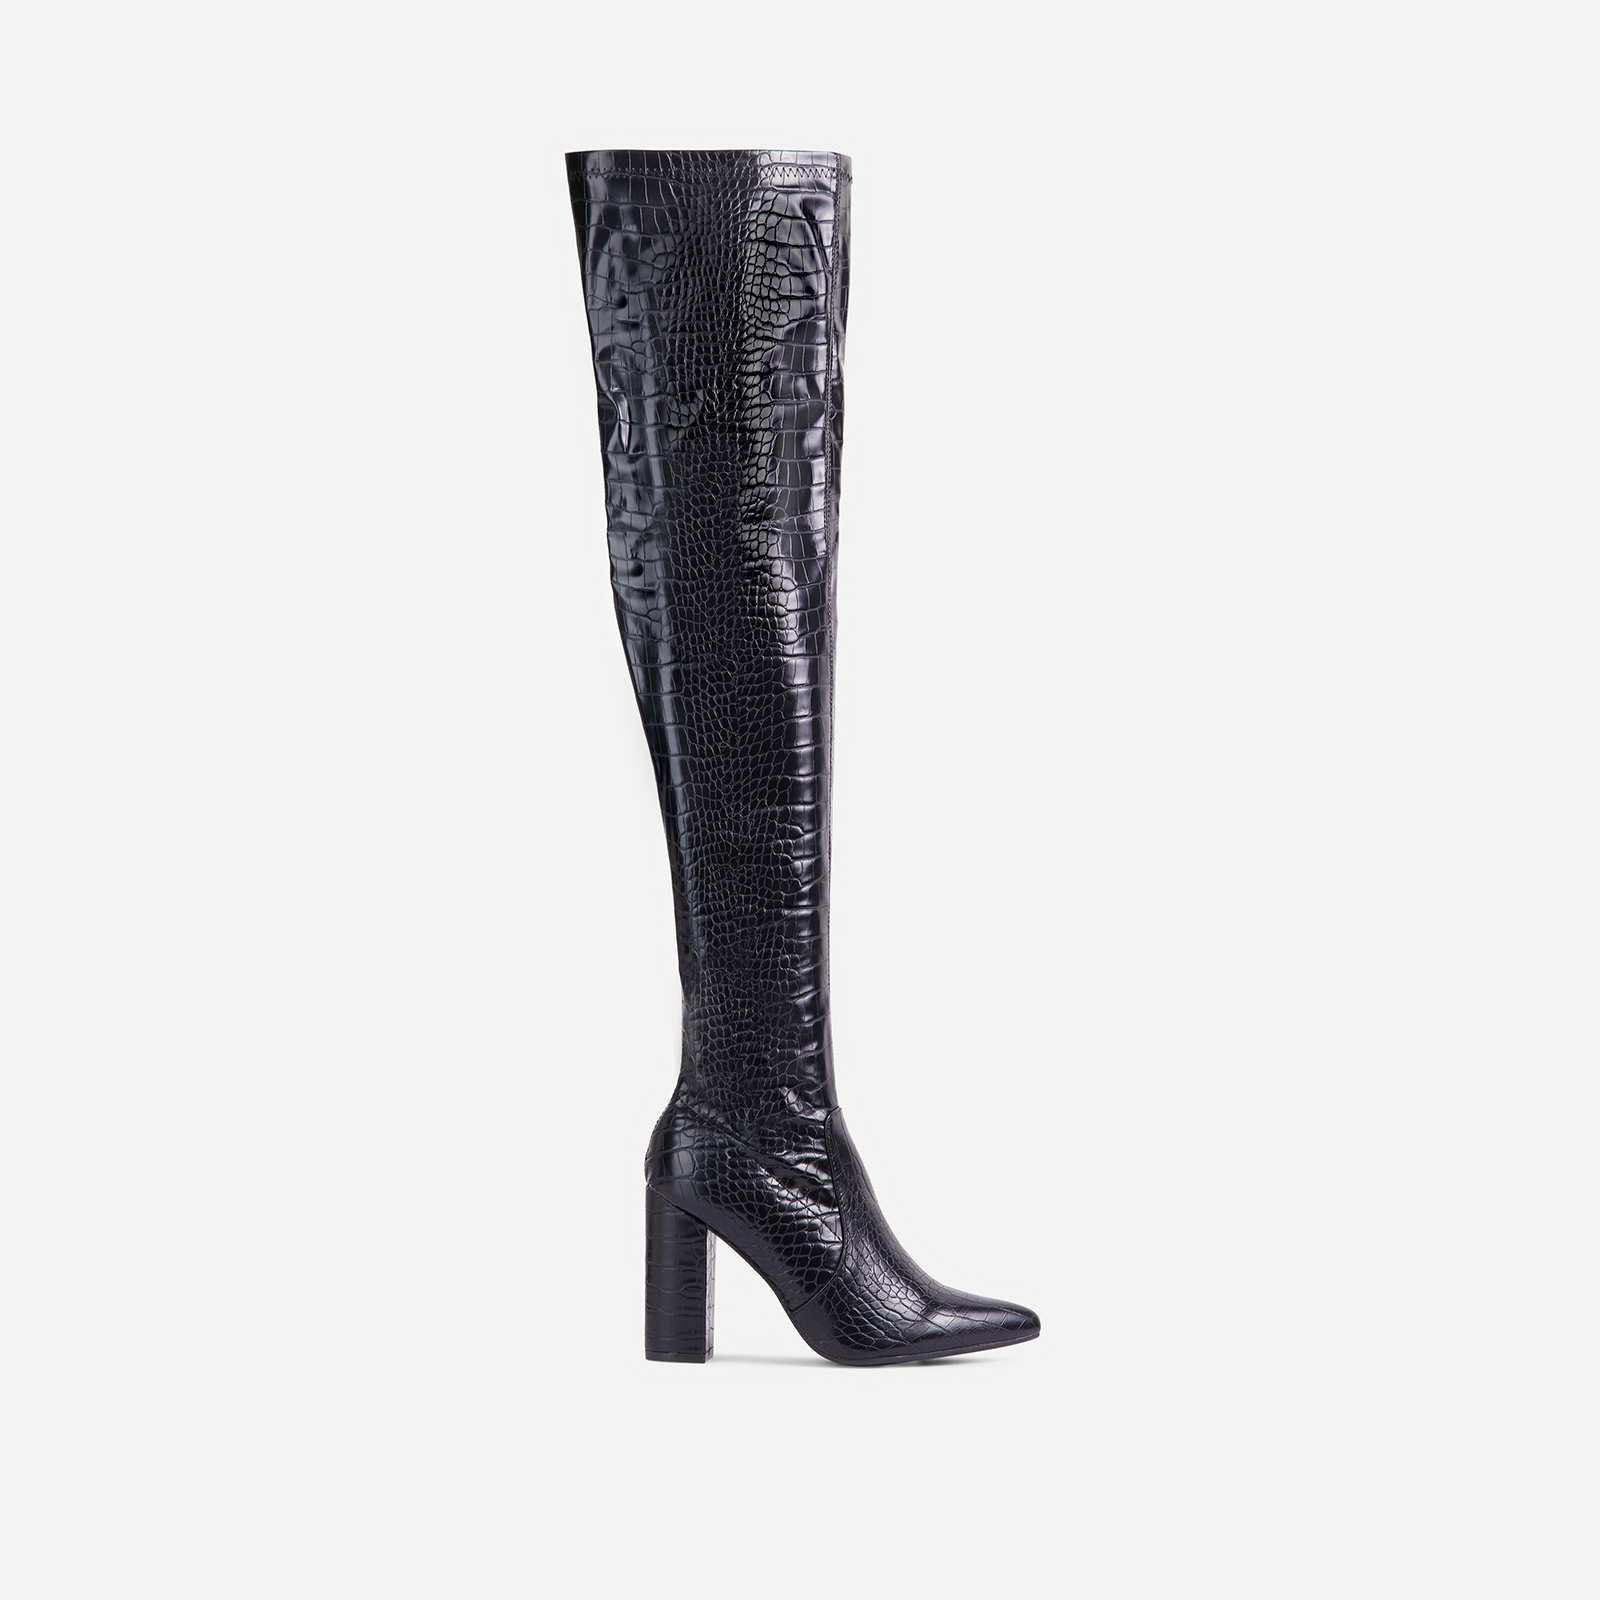 Kansas Block Heel Over The Knee Thigh High Long Boot In Black Croc Print Faux Leather